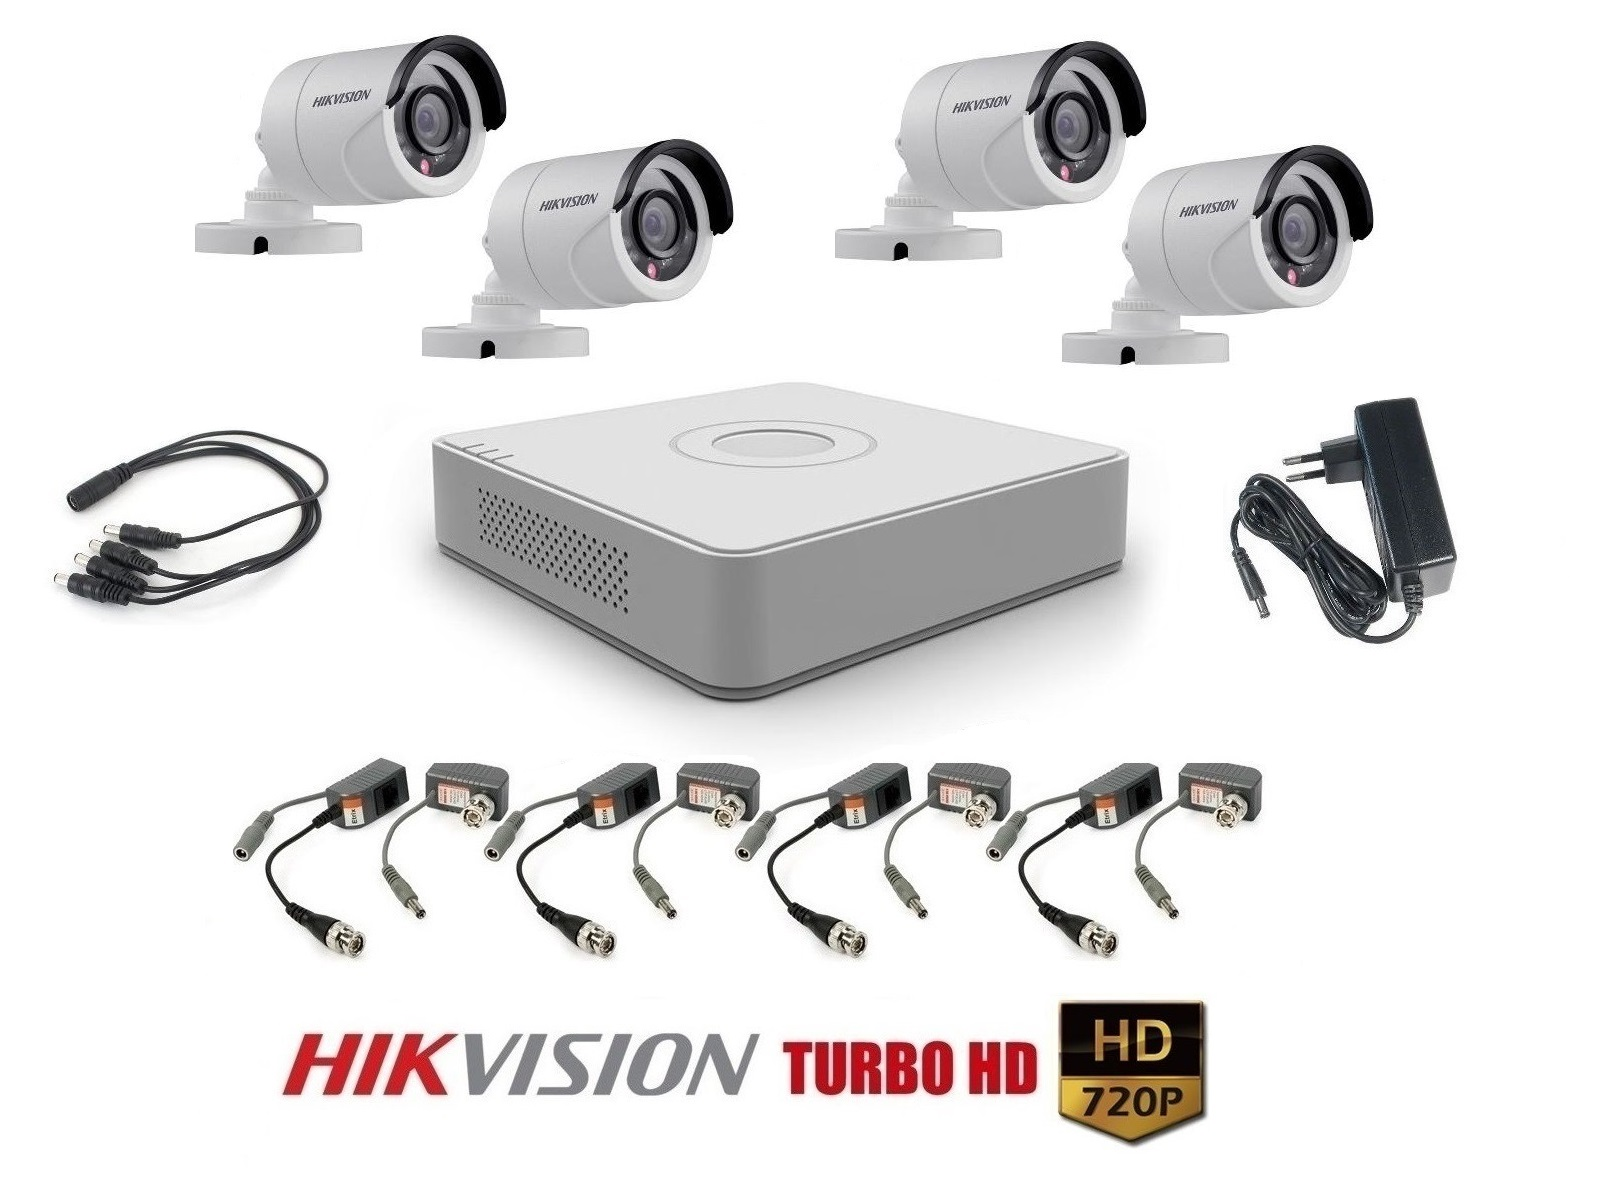 4 kamerový set HIKVISION HD-TVI HD 720p START